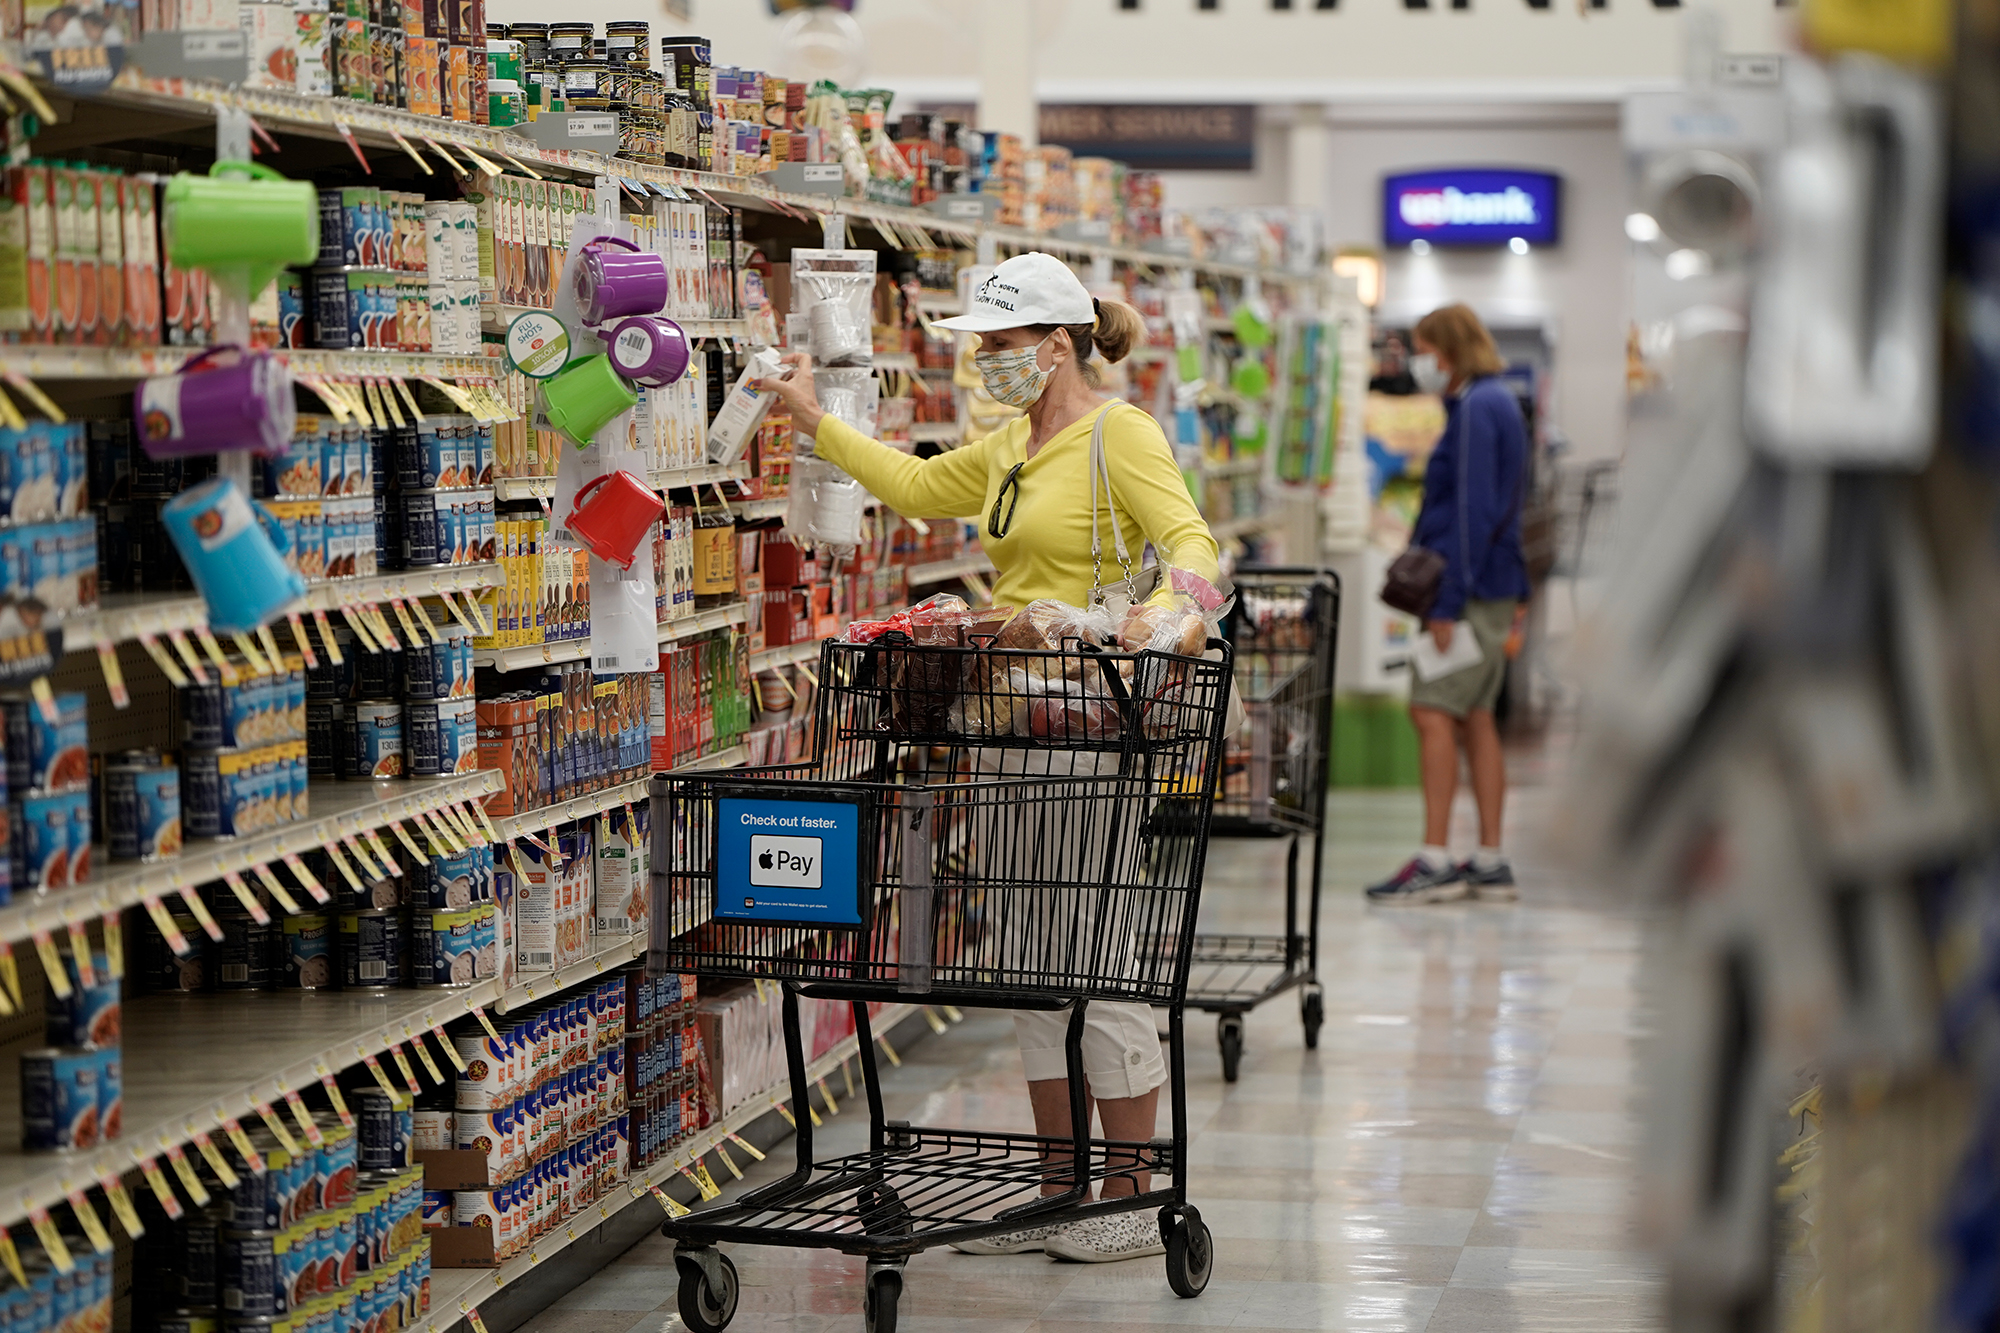 It's harder to find sale items at the grocery store